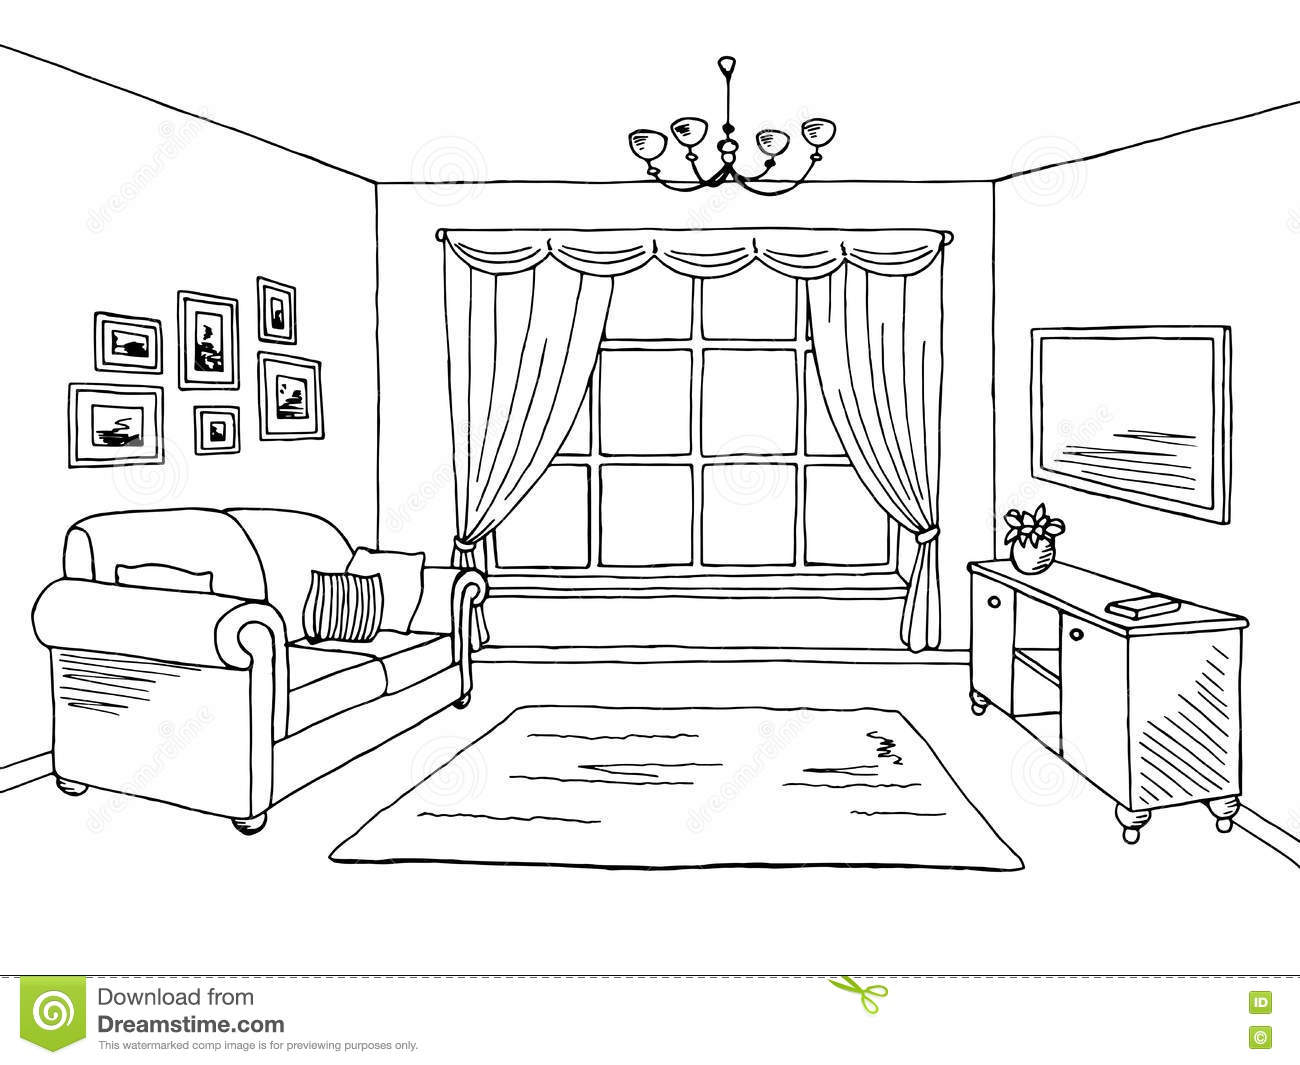 Living room clipart black and white.